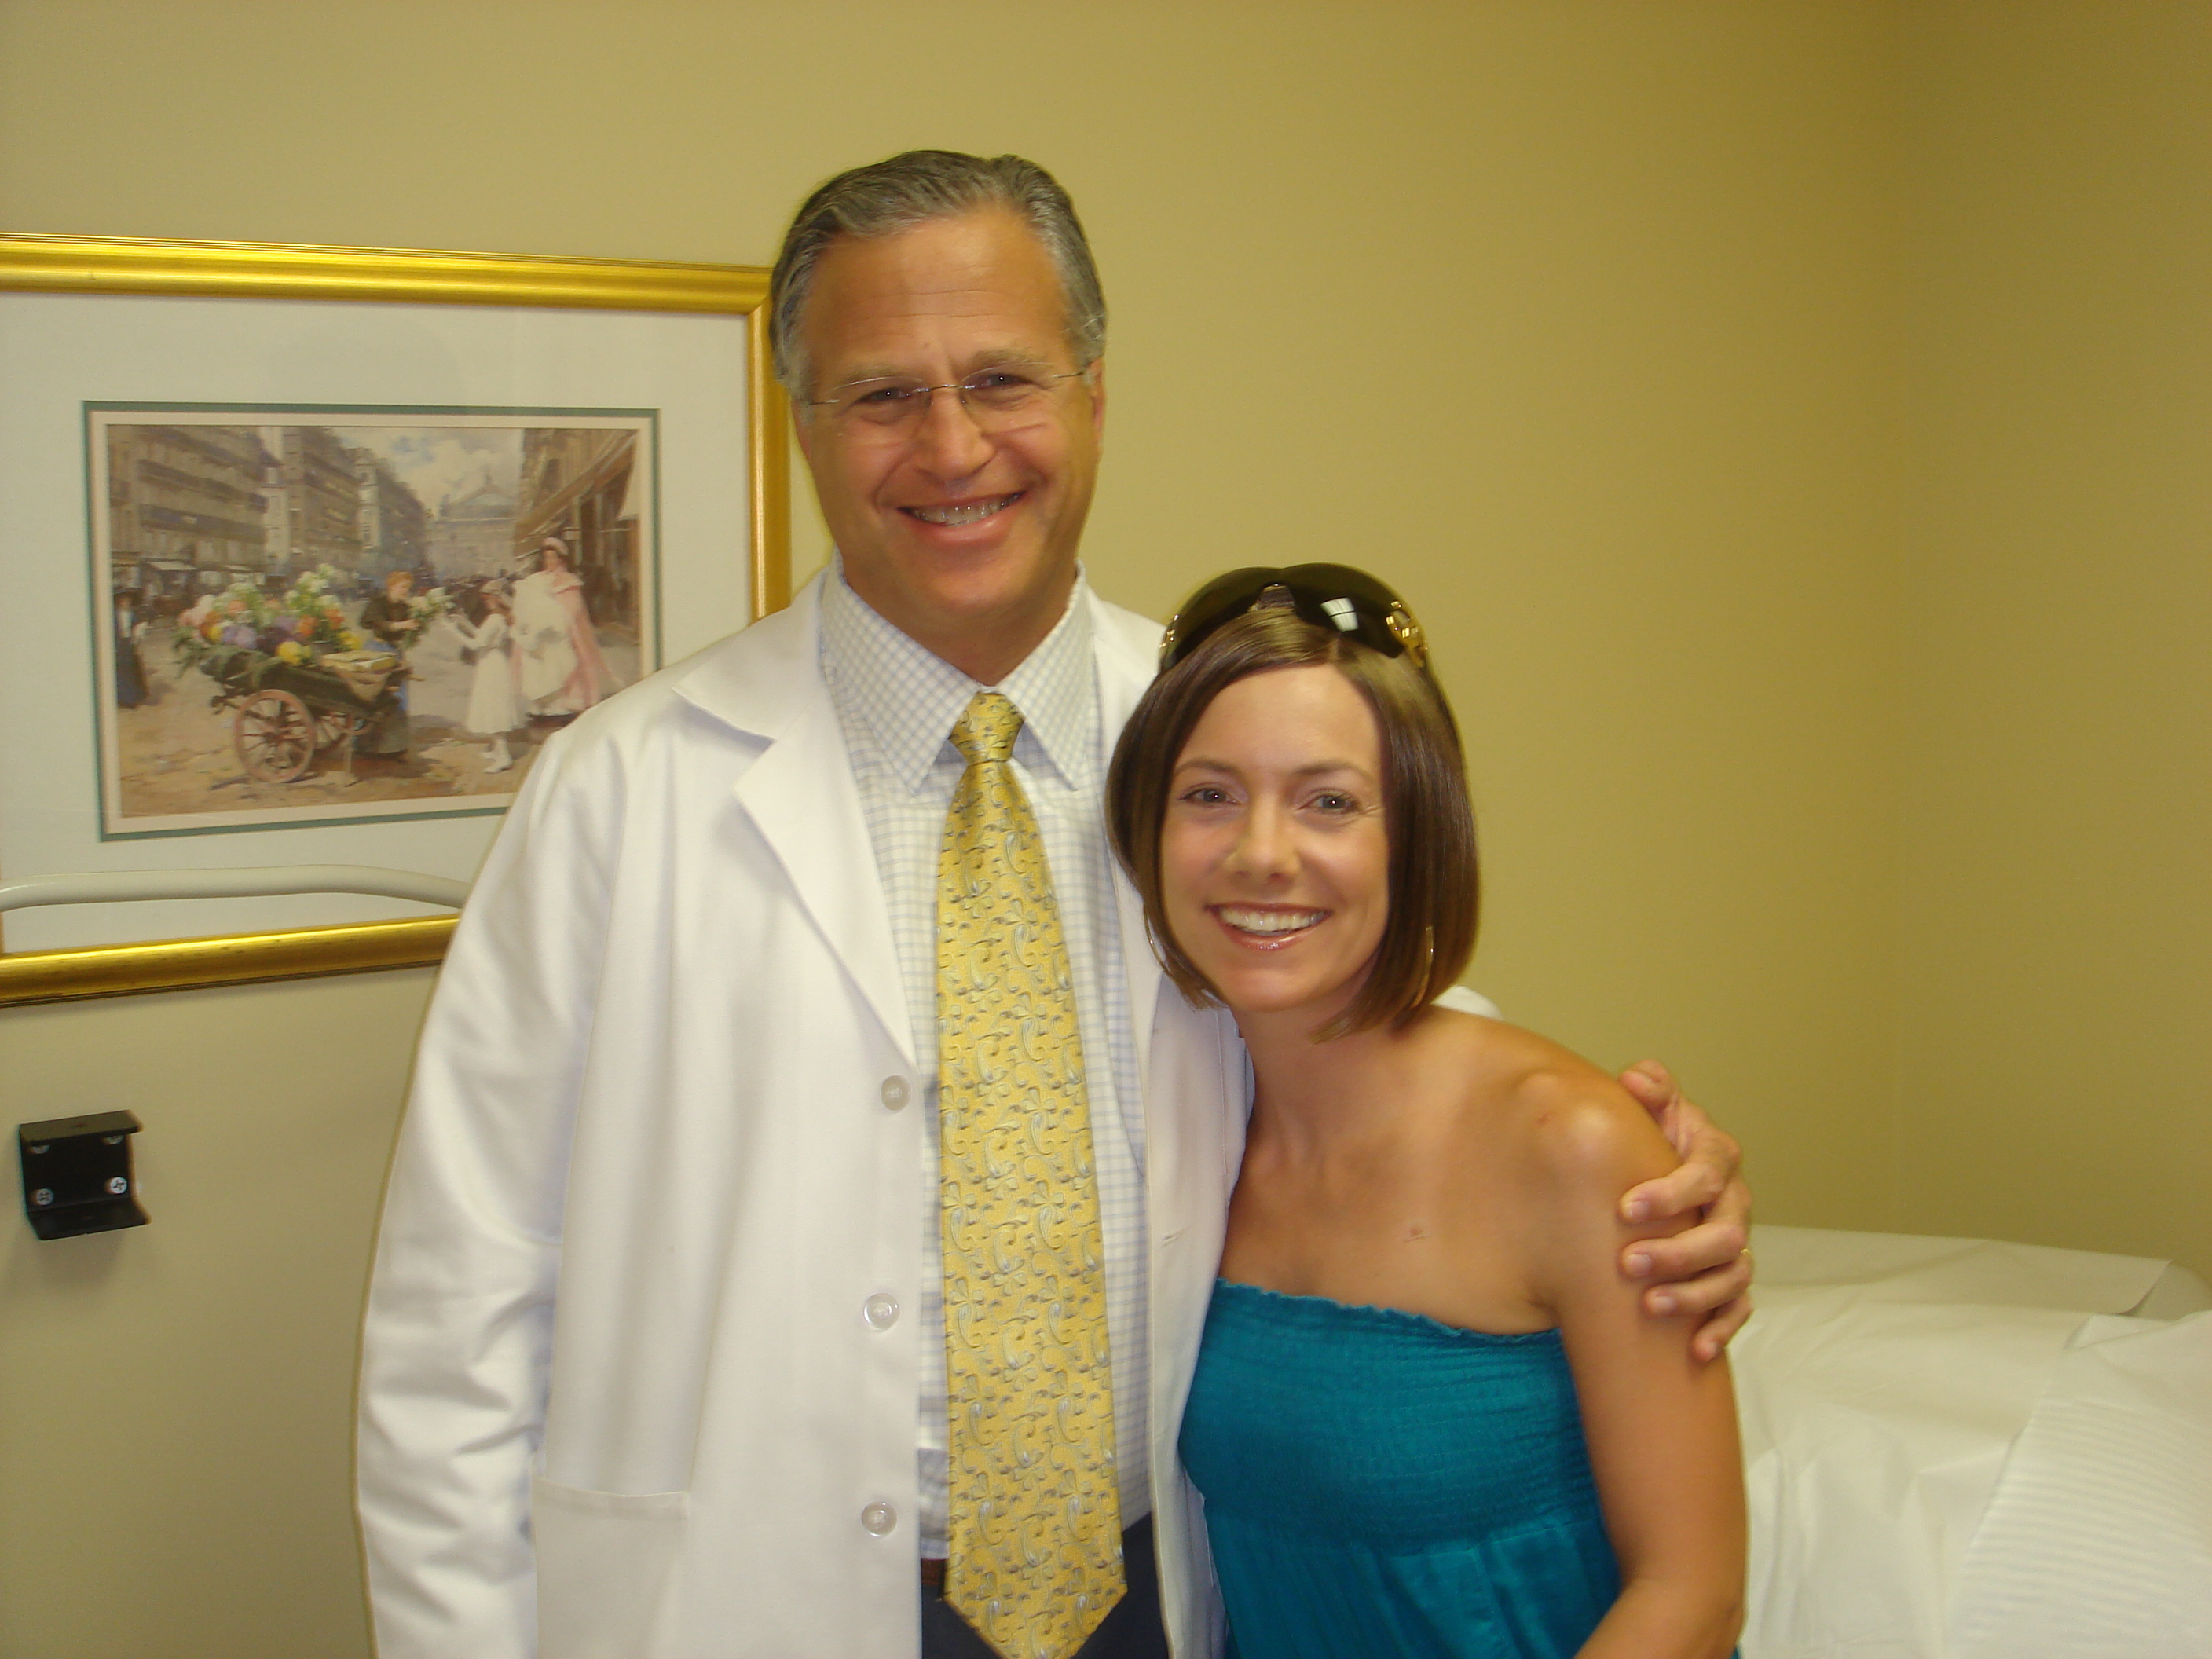 My Gyn Oncologist, Dr. Gerald Feuer